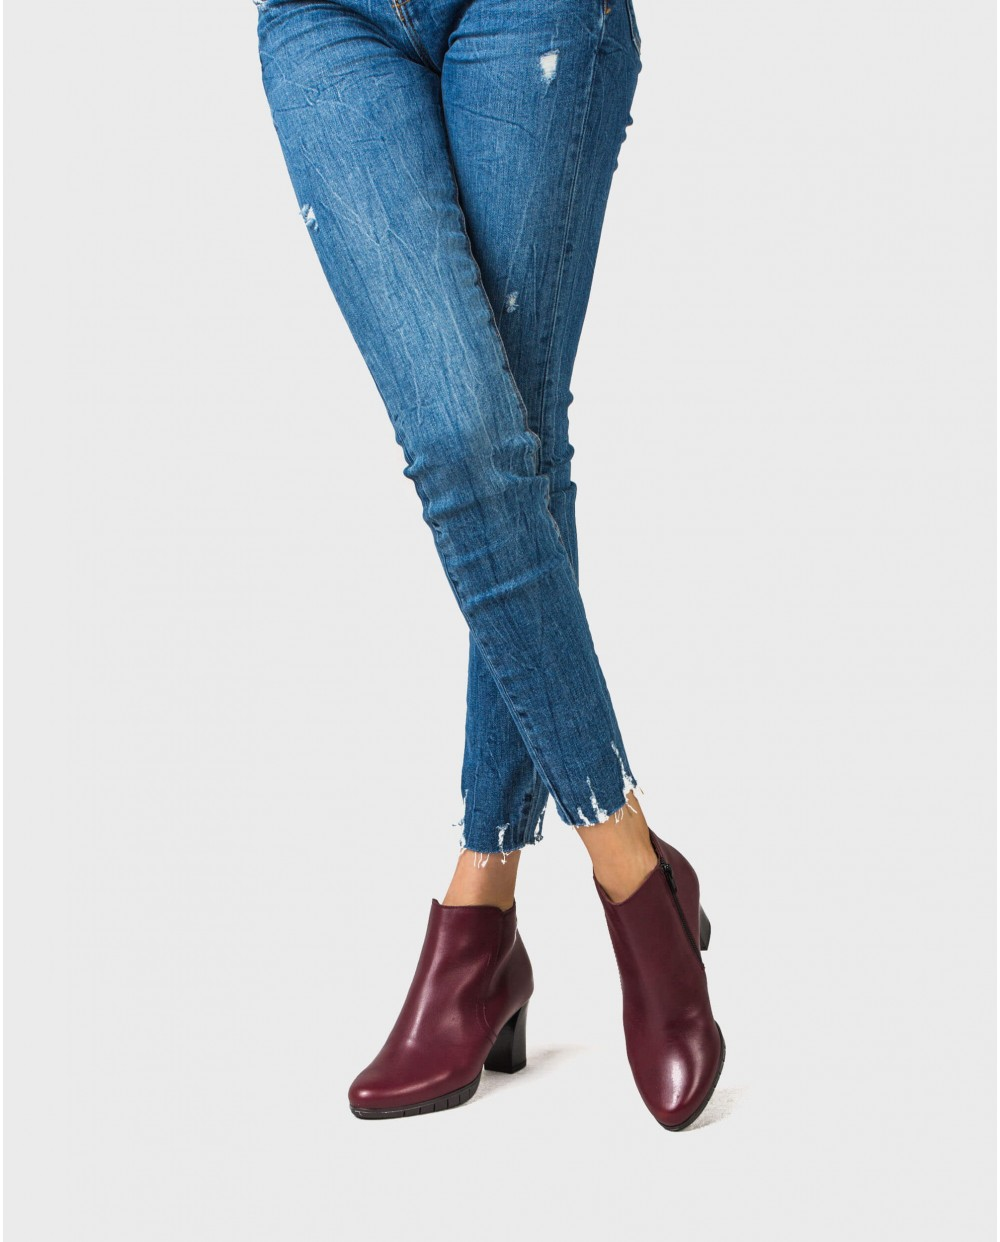 Wonders-Ankle Boots-High heel leather ankle boot